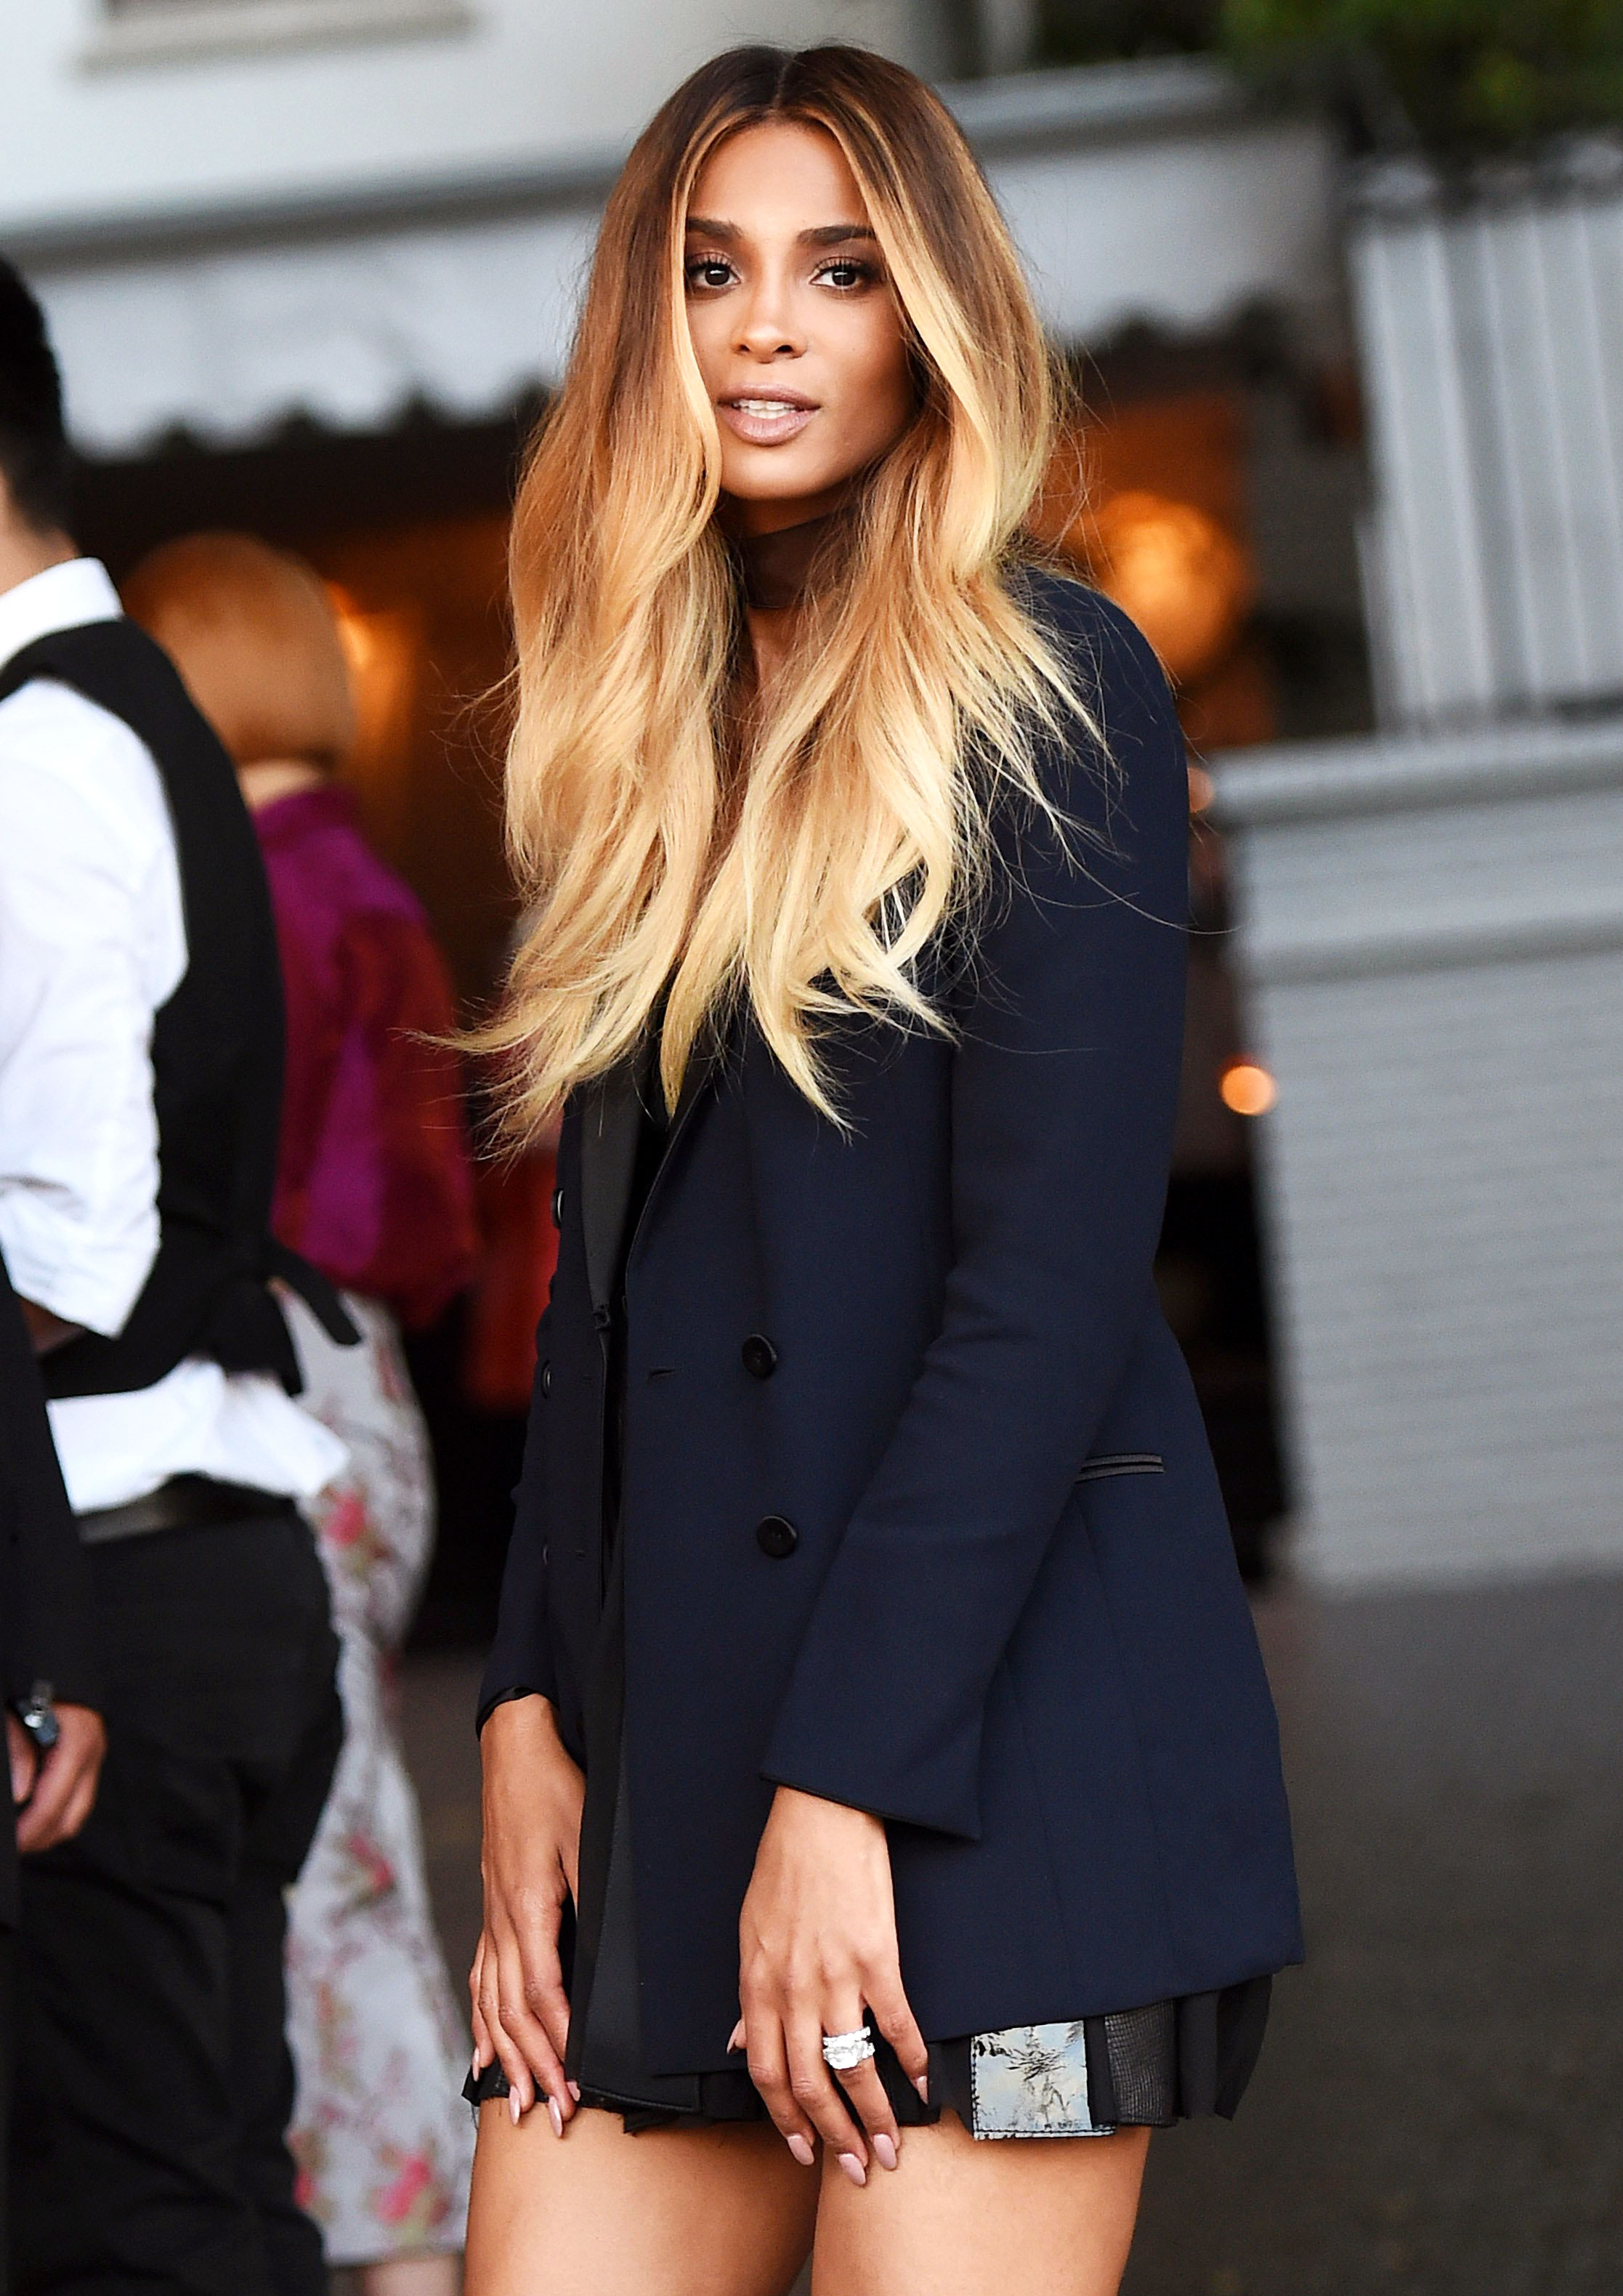 da5a0d233564a Pregnant Ciara Glows at First Event Since Pregnancy Reveal: Pics